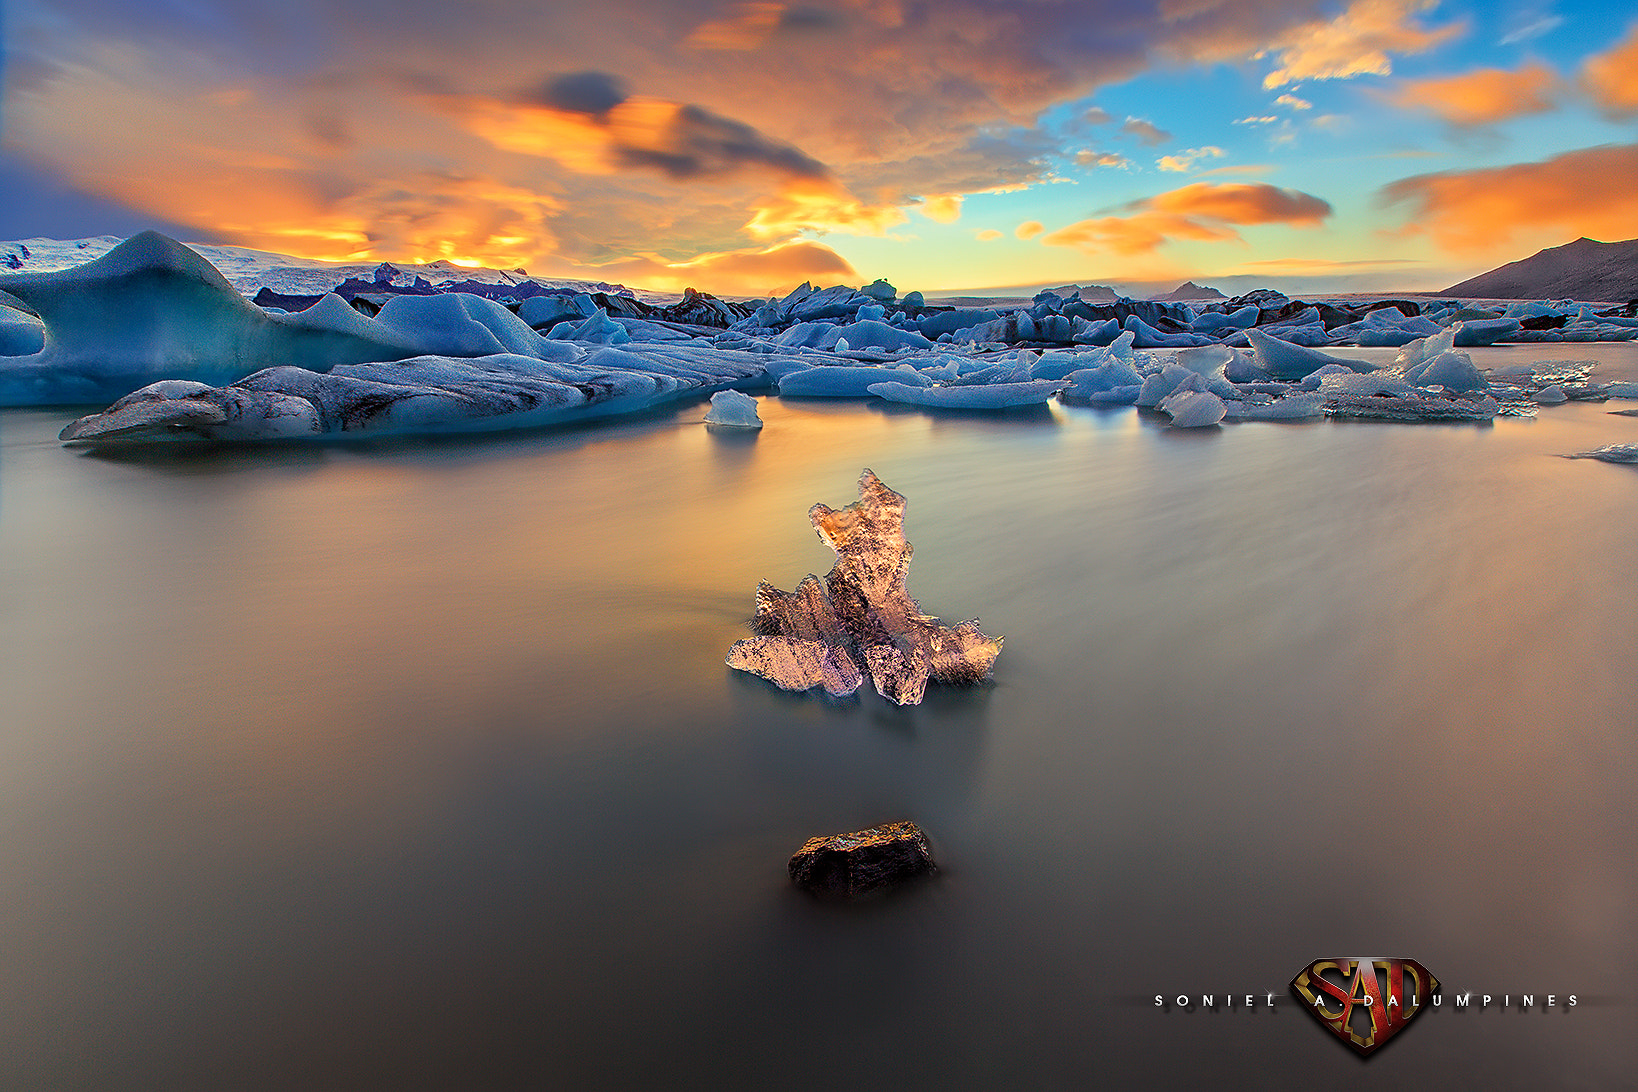 """Photograph """"the ONE"""" - Colors of Jokulsarlon Iceland by Soniel Dalumpines on 500px"""